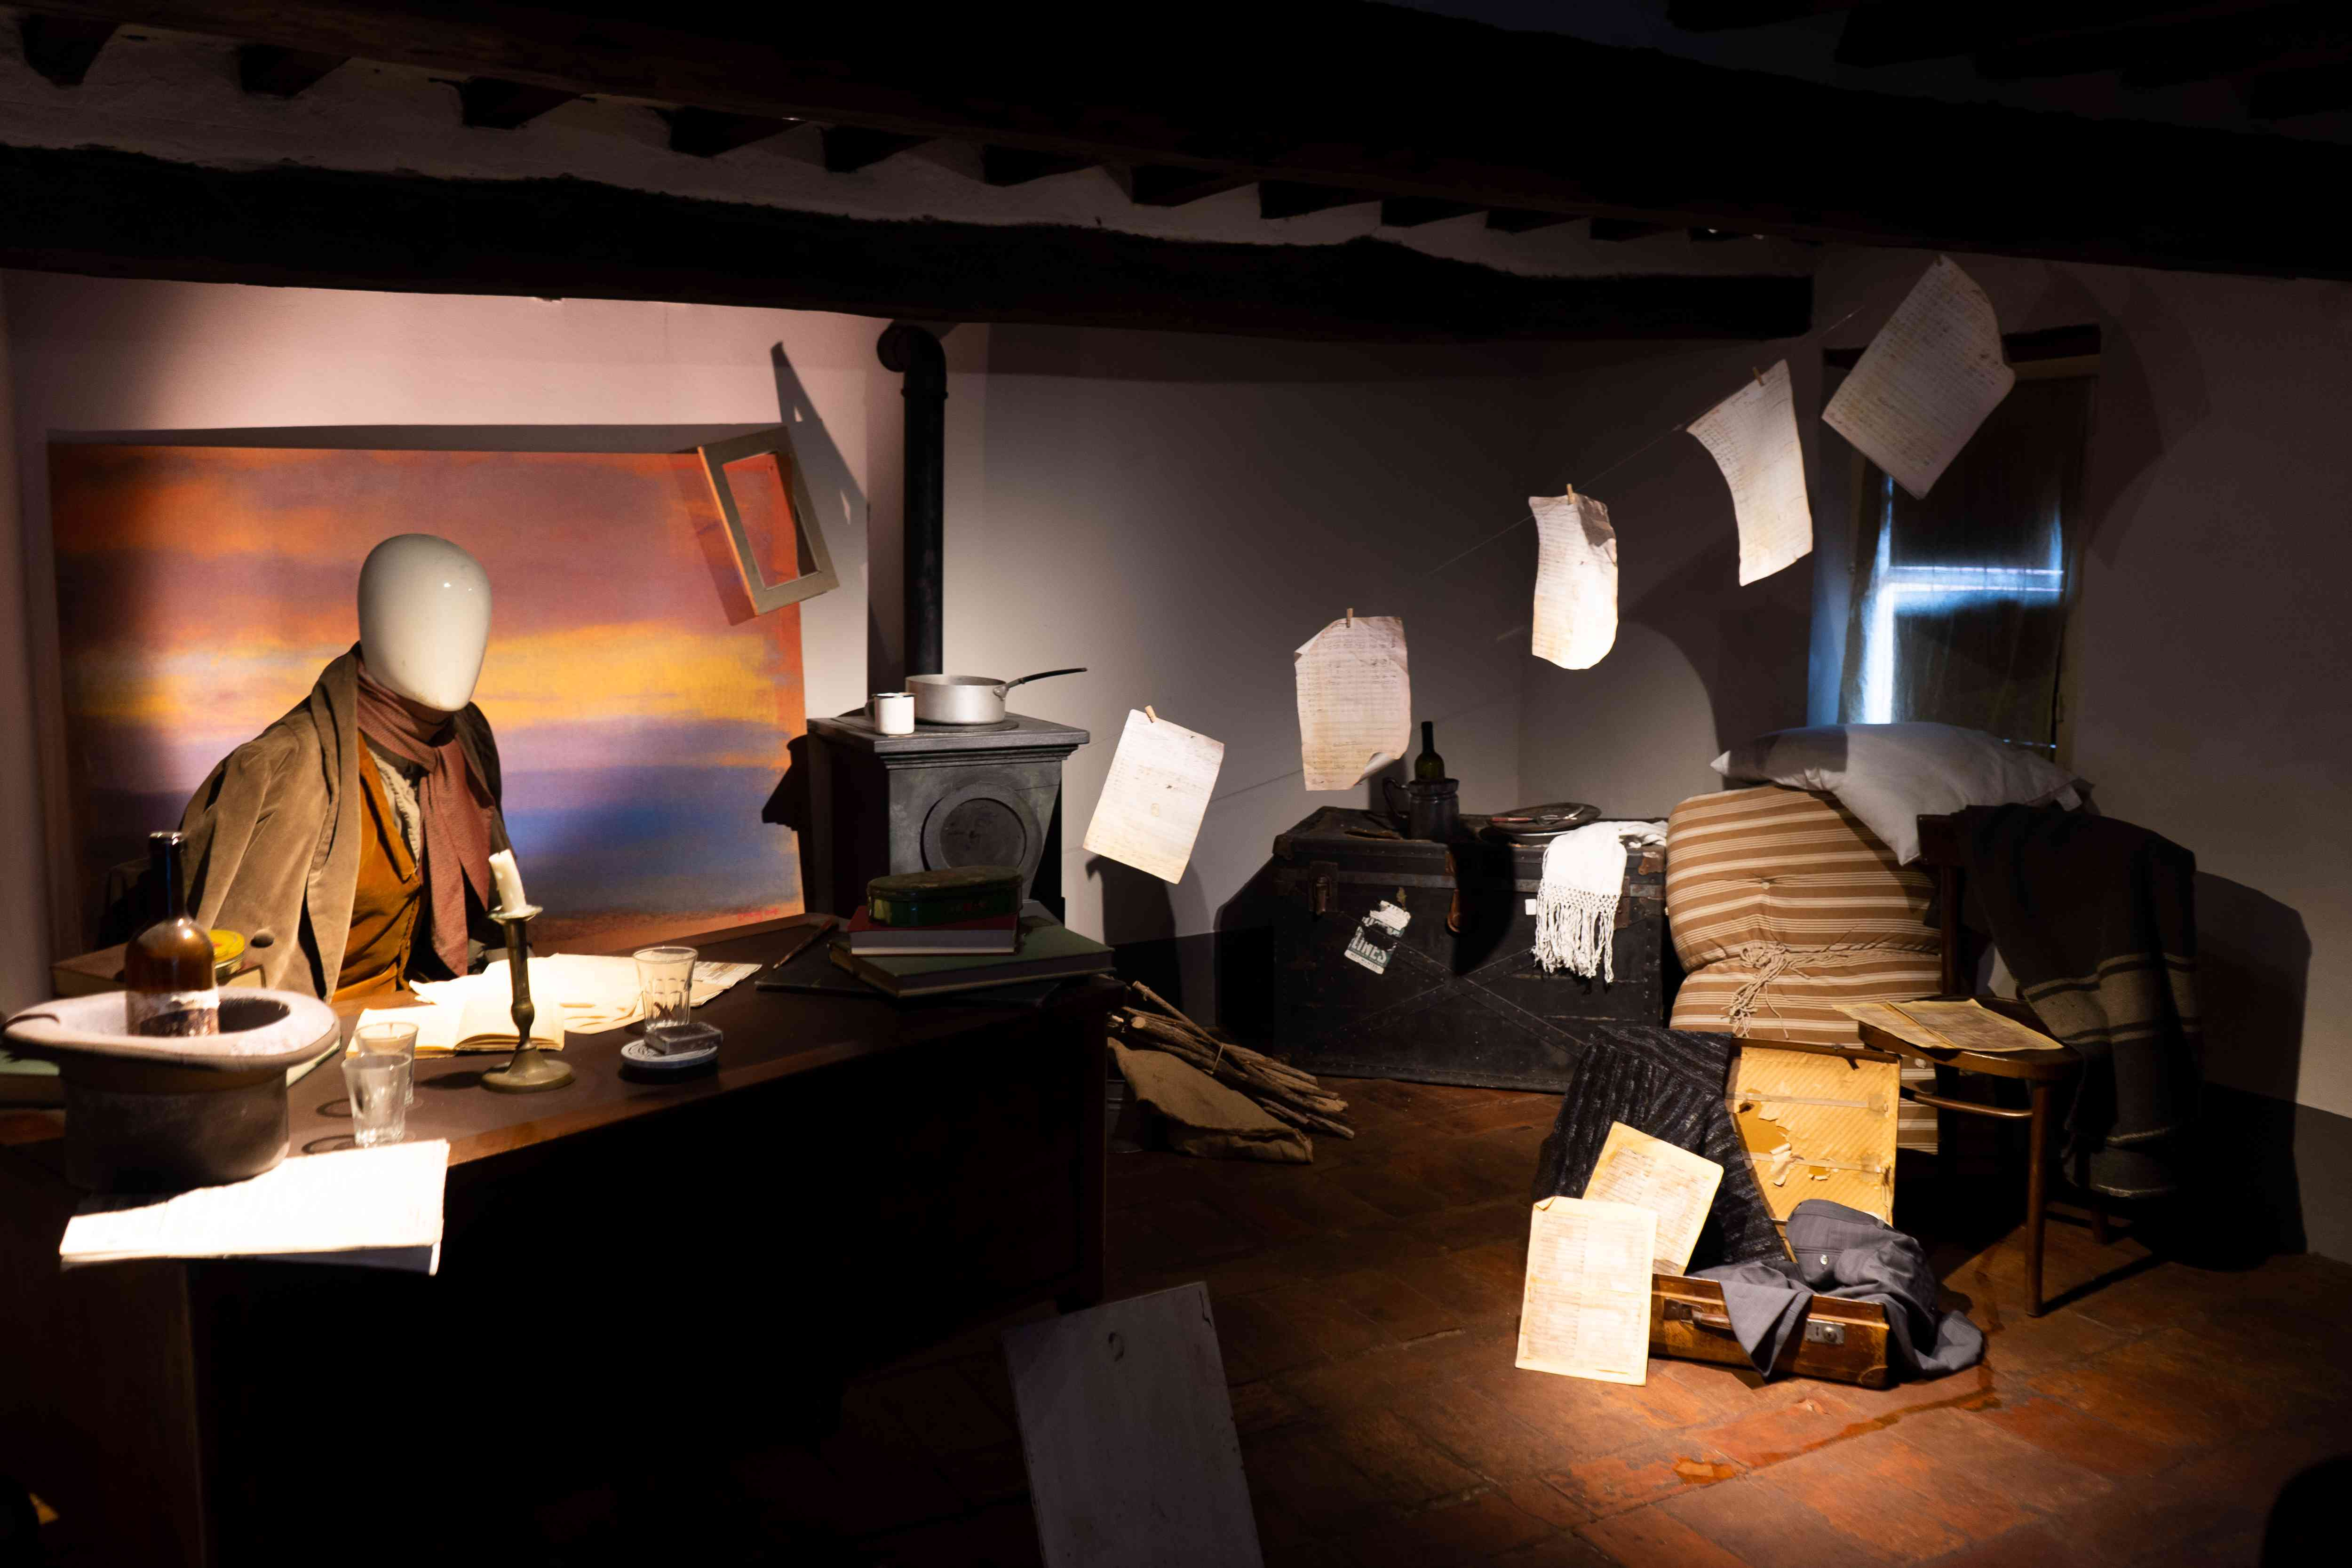 An exhibit in the Puccini House Museum